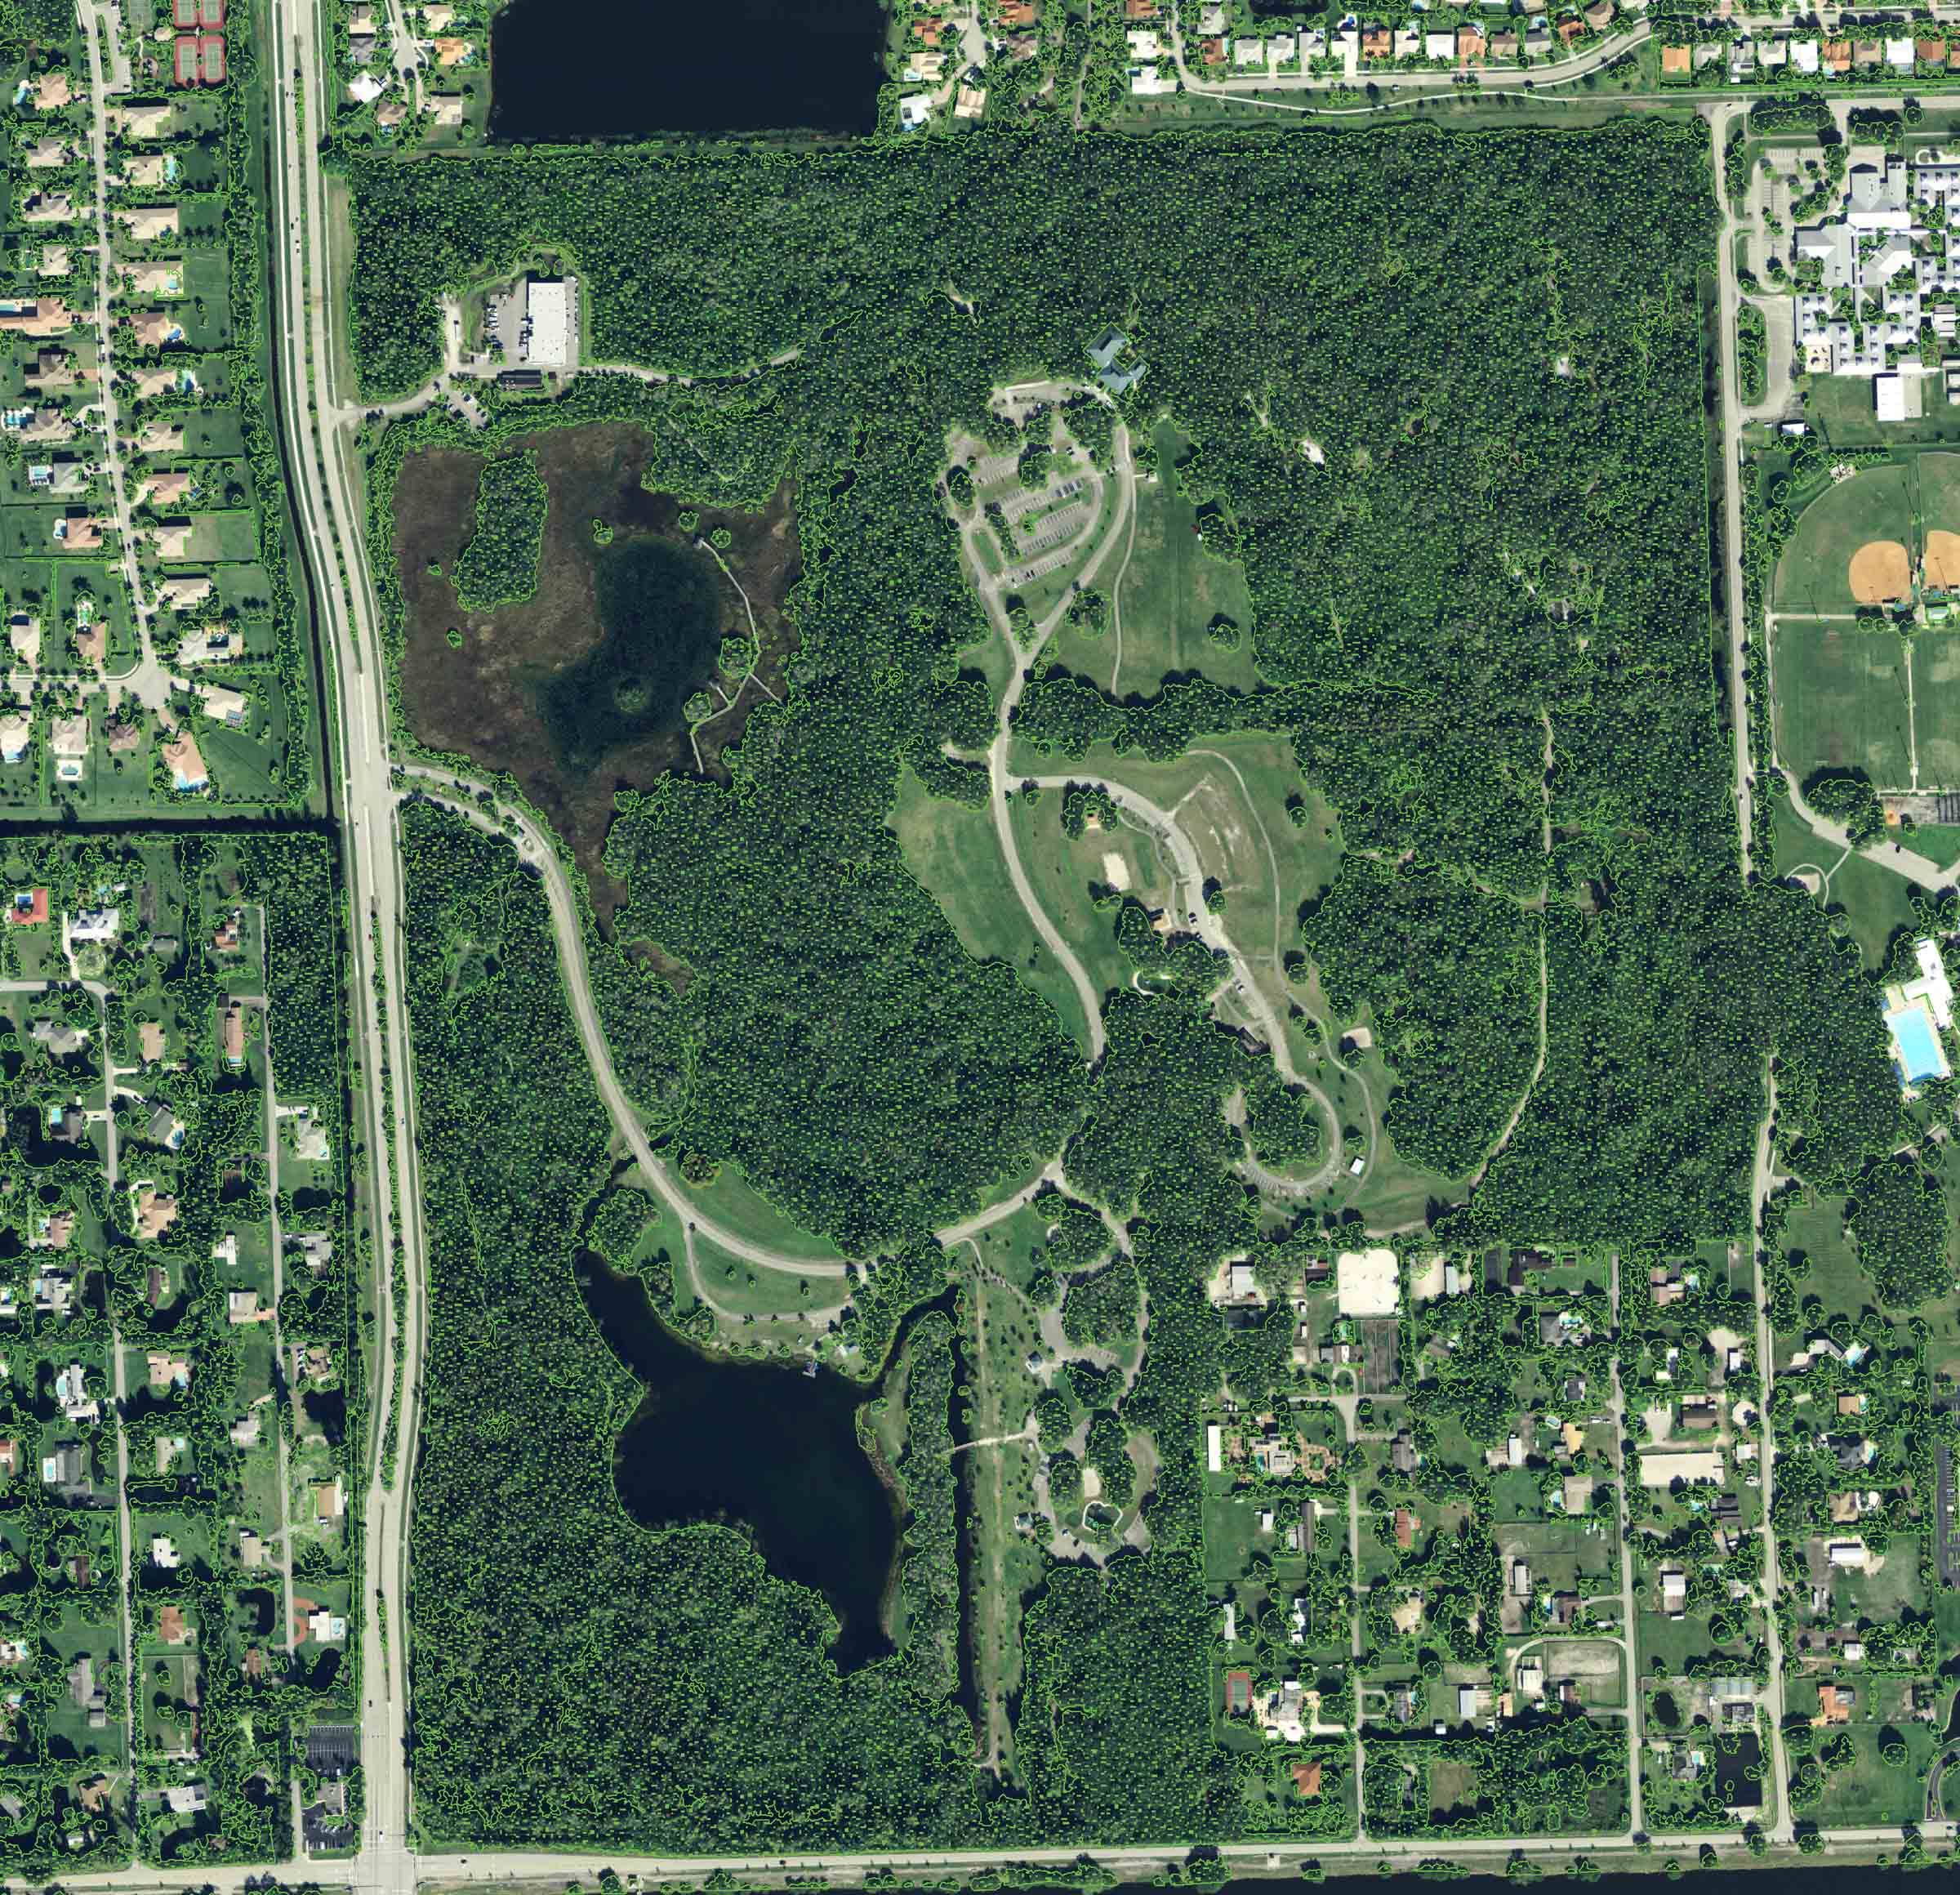 Sample of GIS tree canopy study at Tree Tops Park, Davie FL